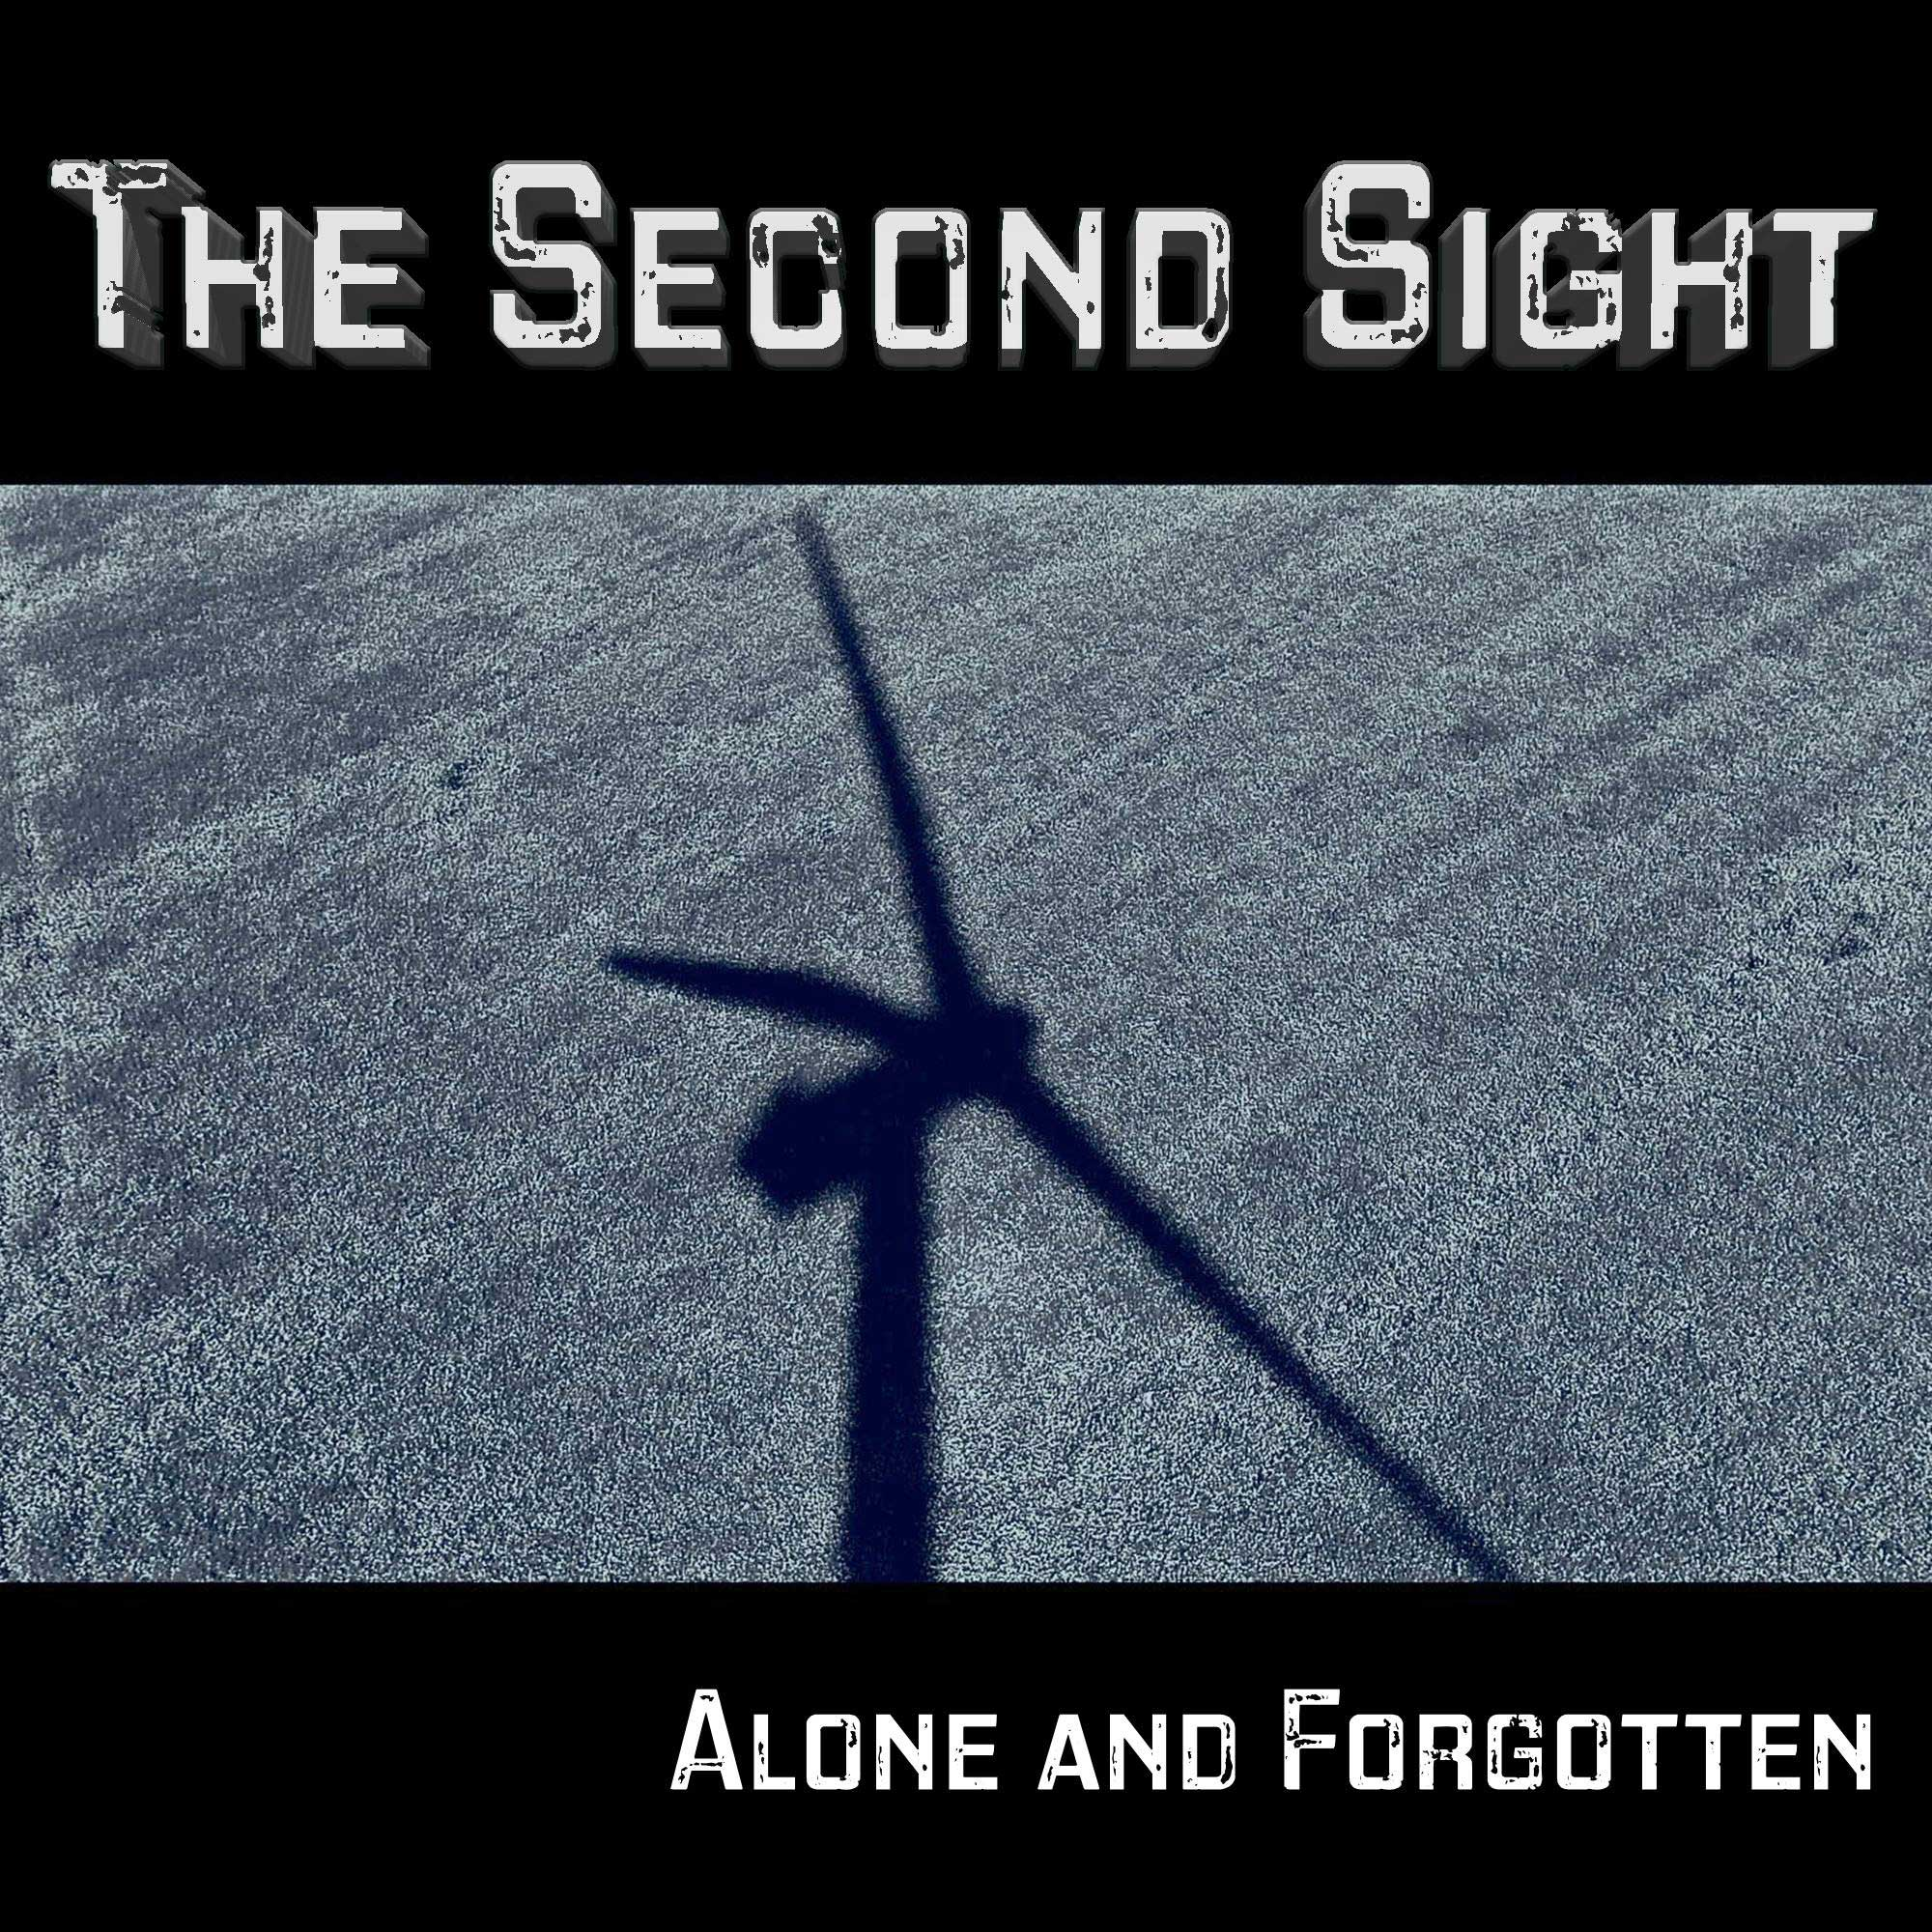 The Second Sight - Alone and Forgotten - The Second Sight - Alone and Forgotten